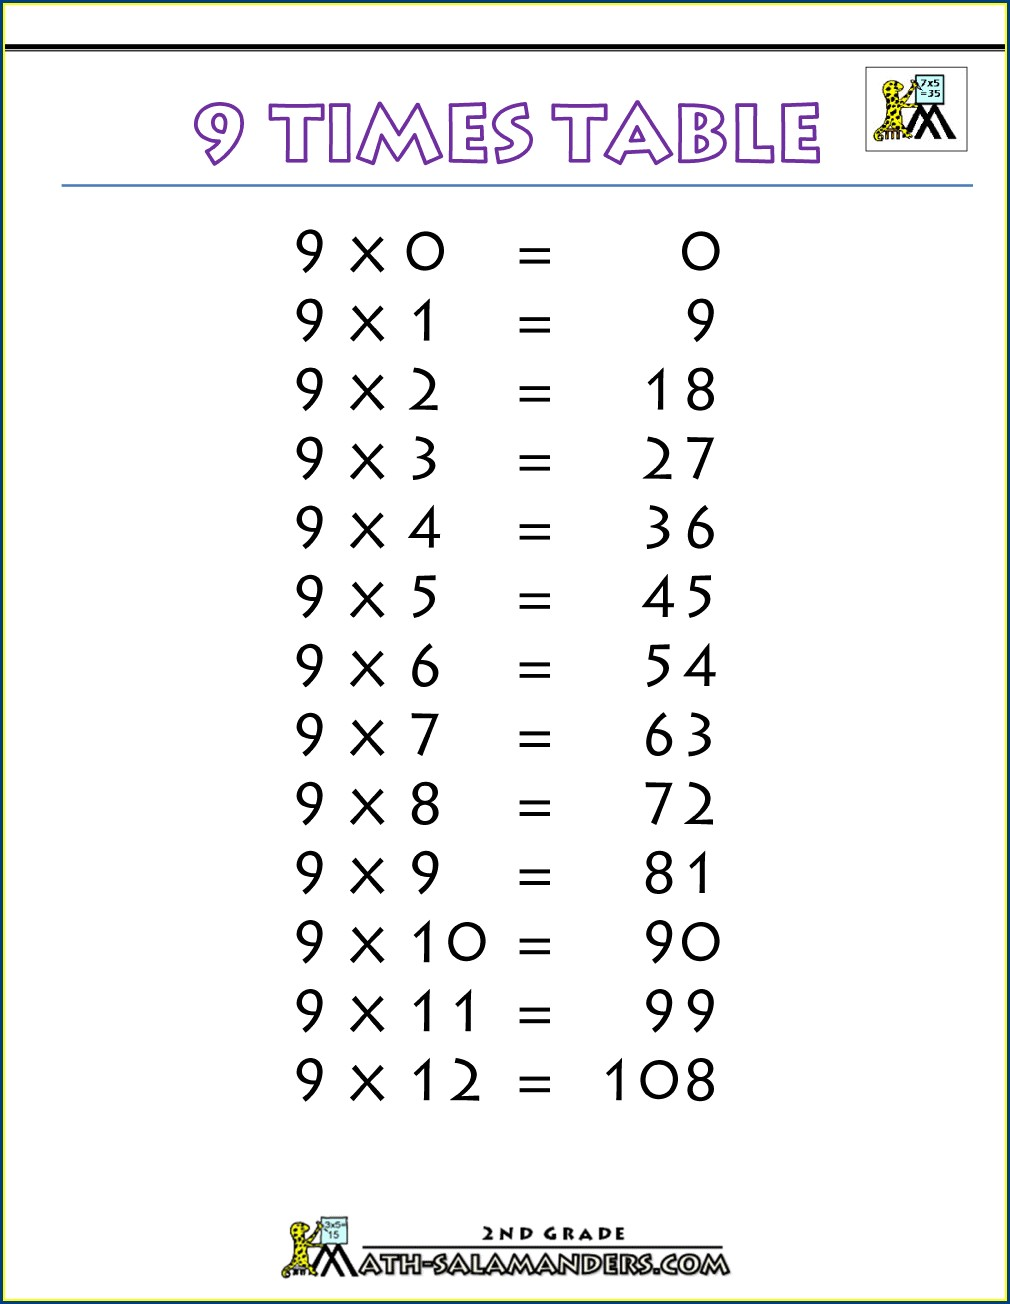 Times Table Worksheet Printable